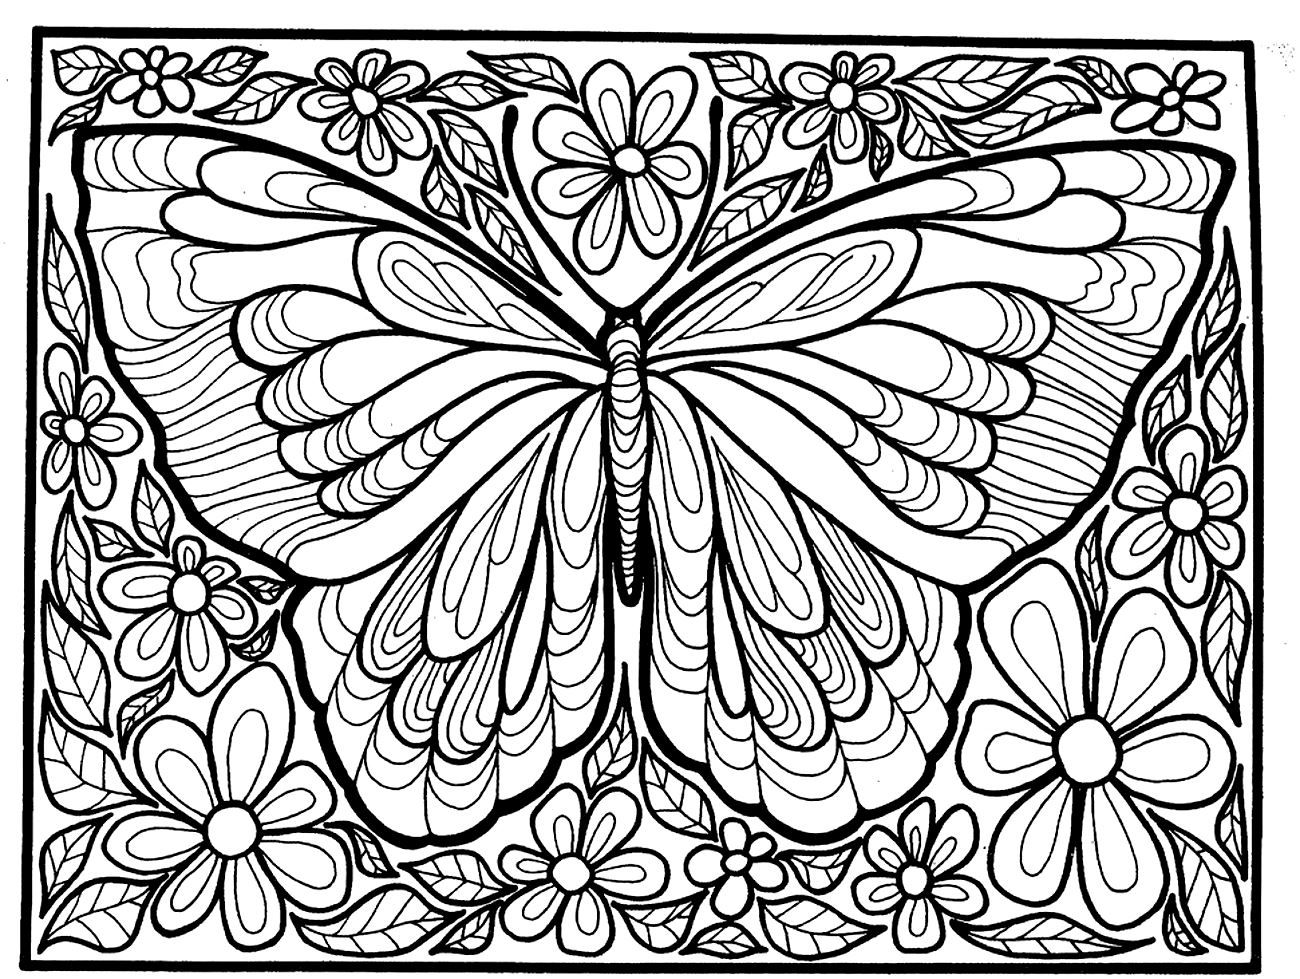 Free coloring pages butterfly - To Print This Free Coloring Page Coloring Adult Difficult Big Butterfly